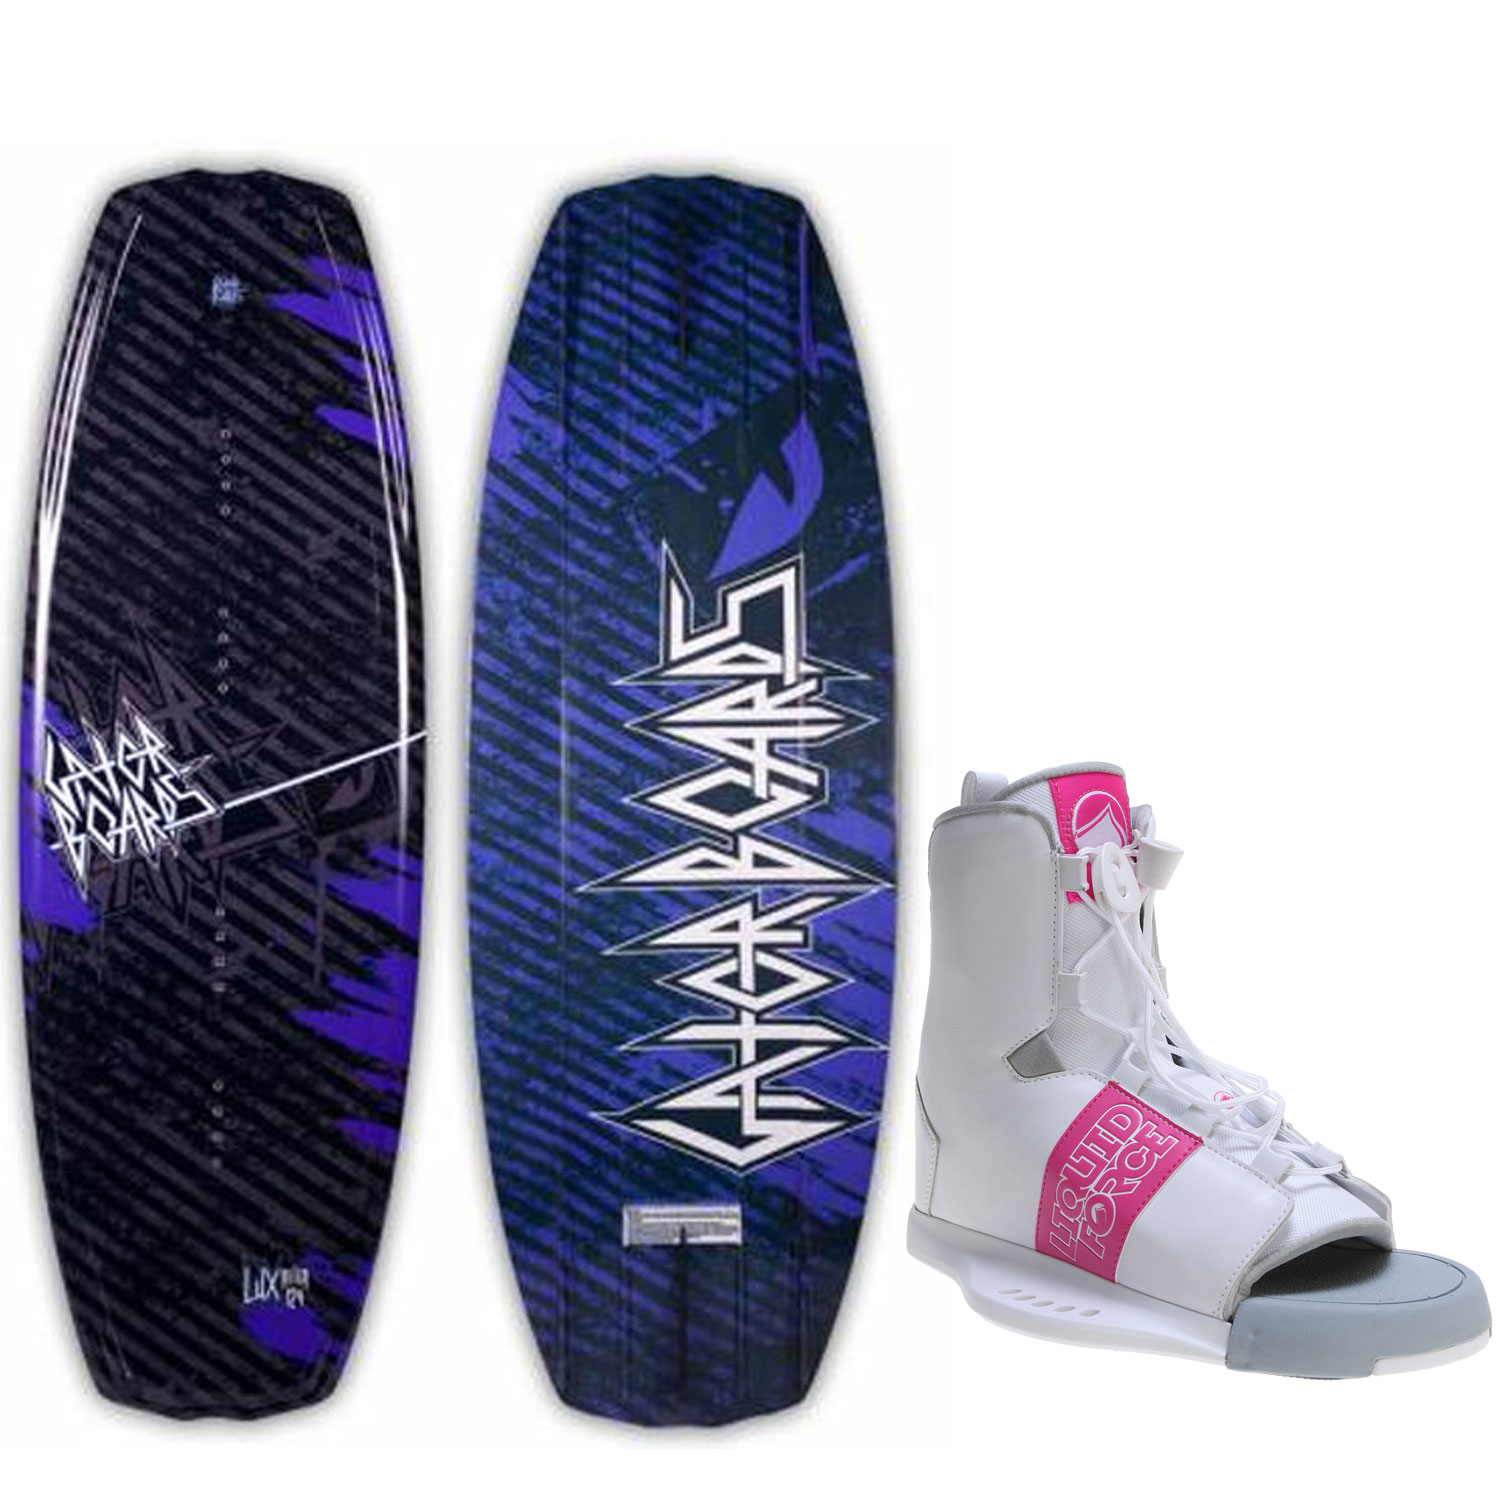 Gator Boards Lux Wakeboard 124 Womens + Liquid Force Alpha Bindings O S 6-10 by Gator Boards